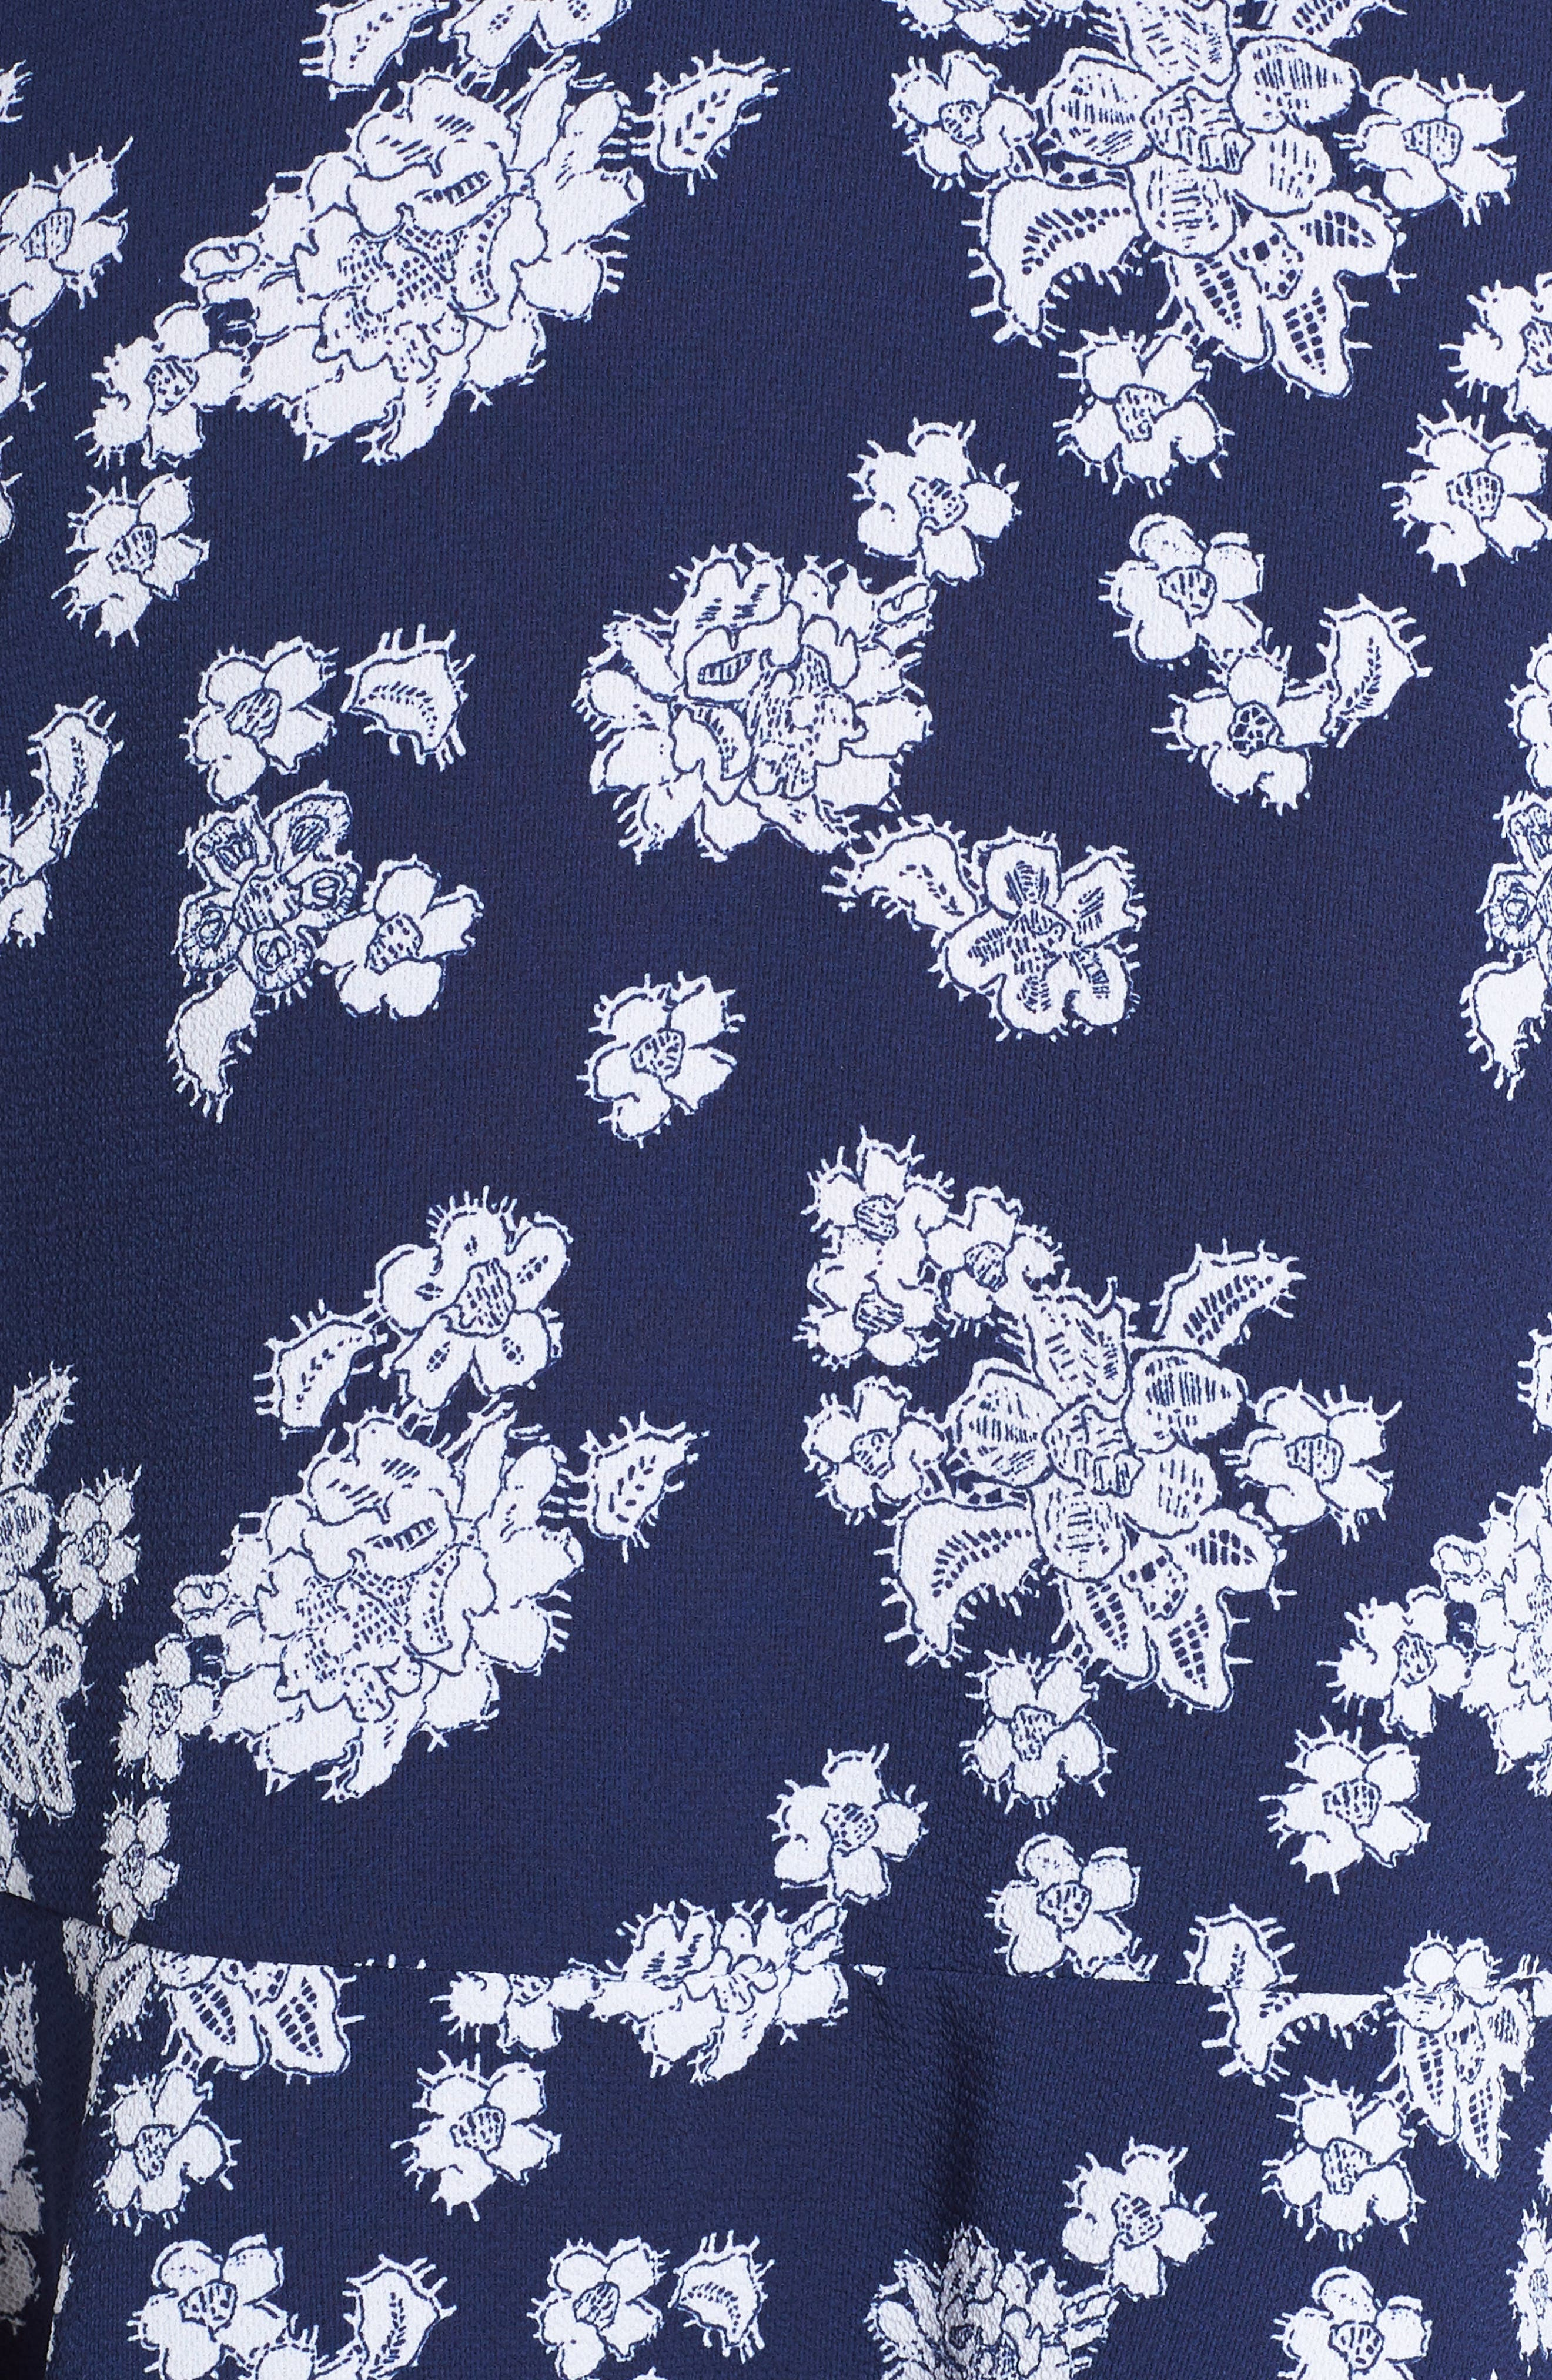 Tossed Lace Flowers Top,                             Alternate thumbnail 5, color,                             TRUE NAVY/ WHITE